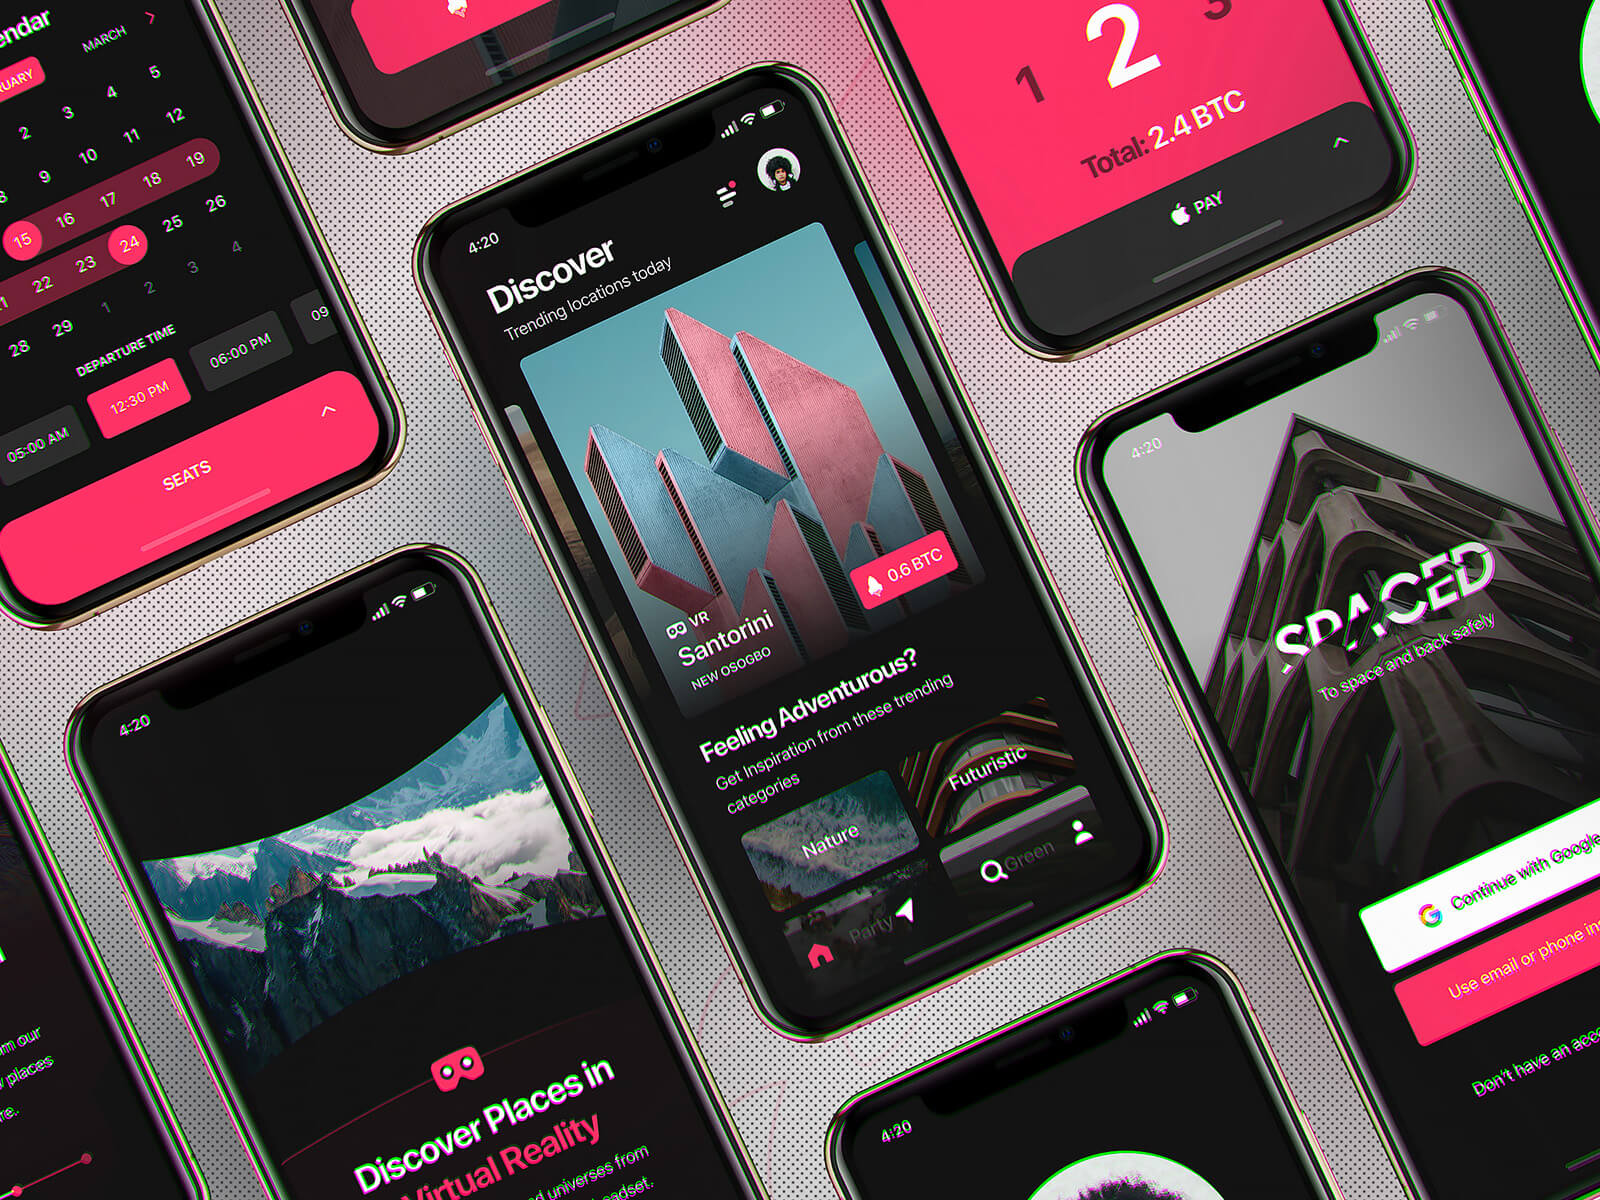 iPhone screens with an app mockup